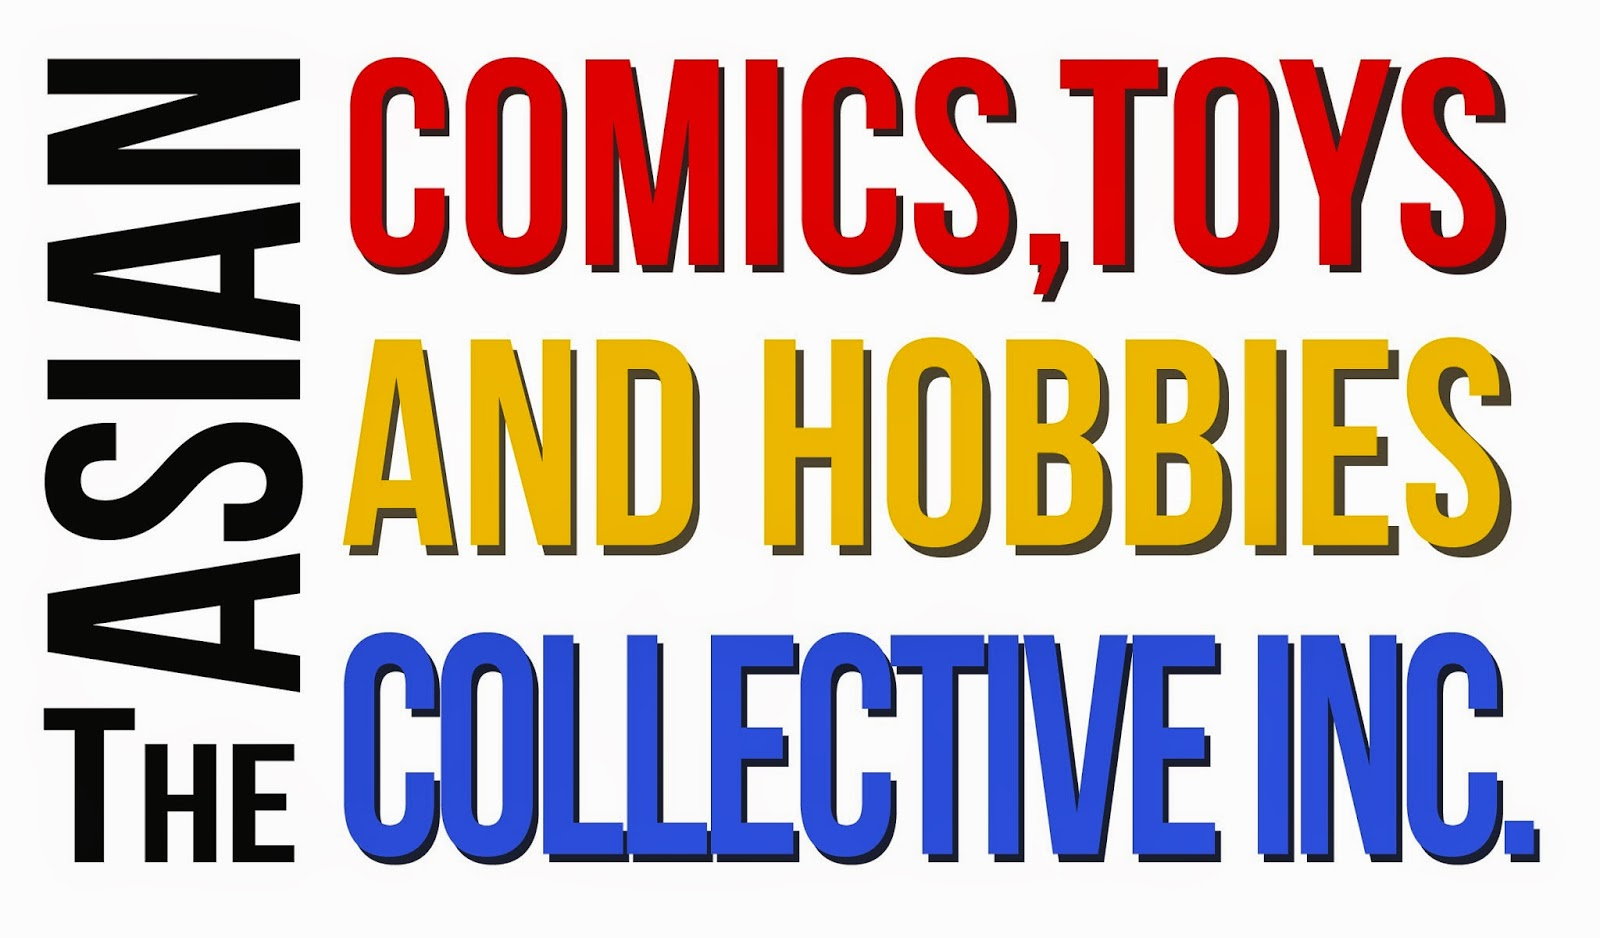 about us philippine toys hobbies and collectibles convention the asian comics toys and hobbies collective inc is a non profit association based in metro manila whose main objectives are to promote interest in the